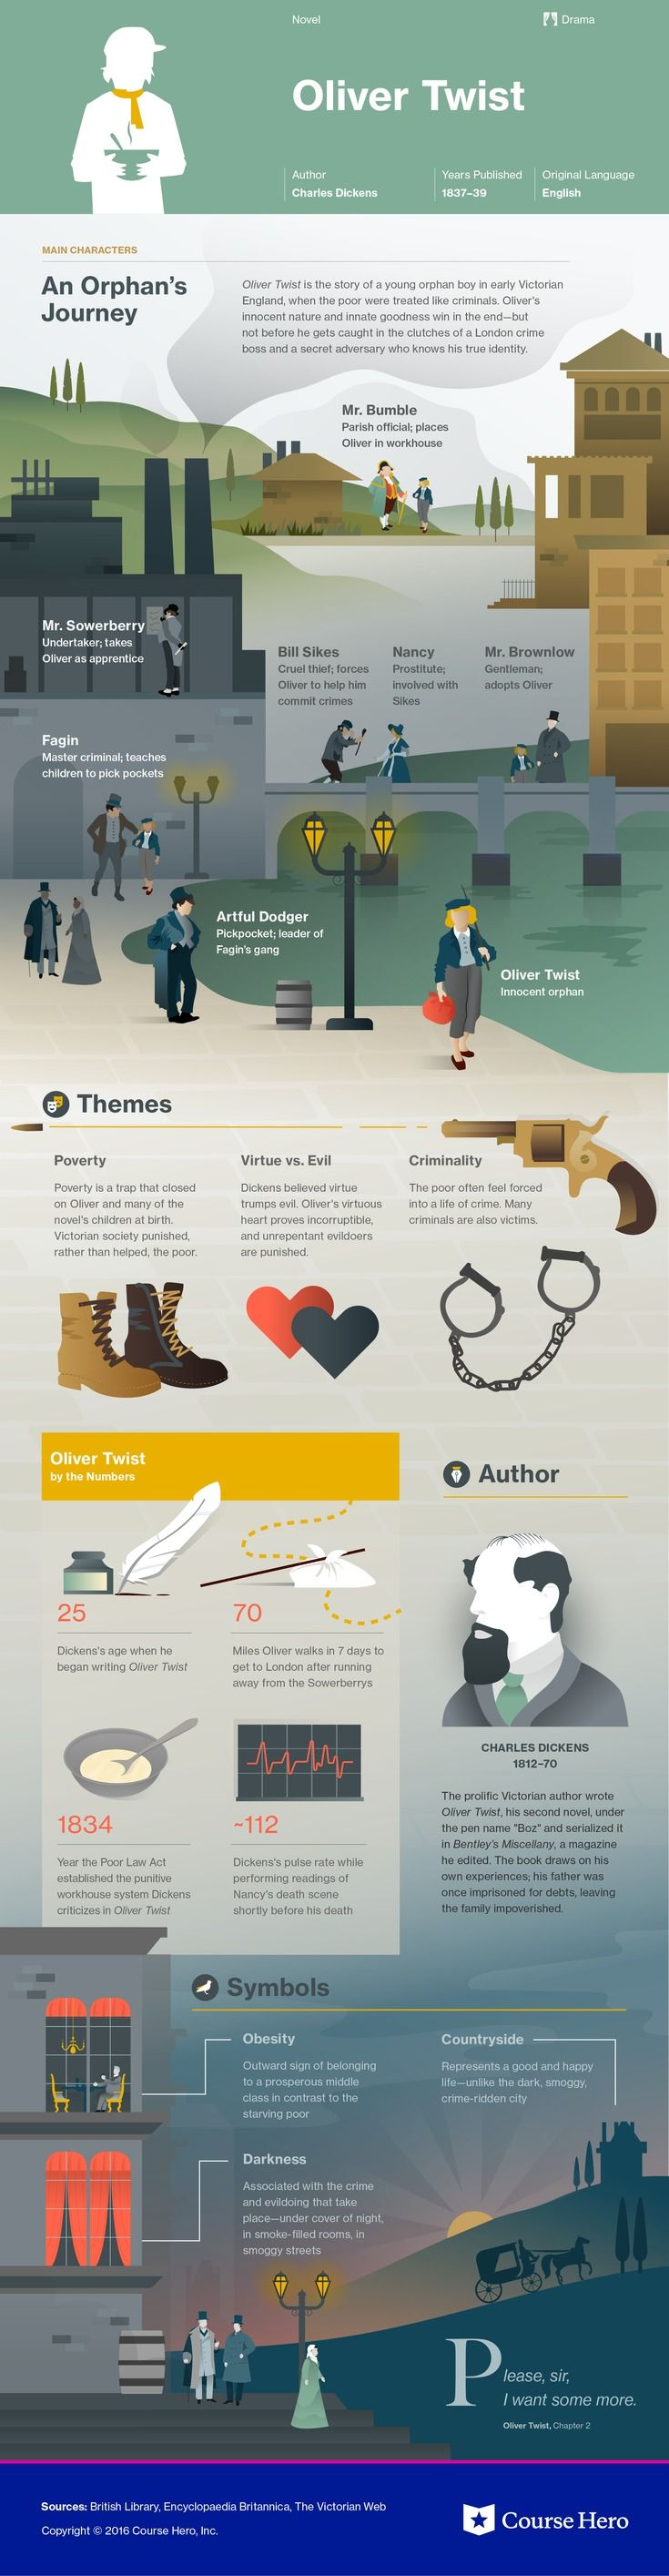 awesome how to write a macbeth essay structure steps this coursehero infographic on oliver twist is both visually stunning and informative